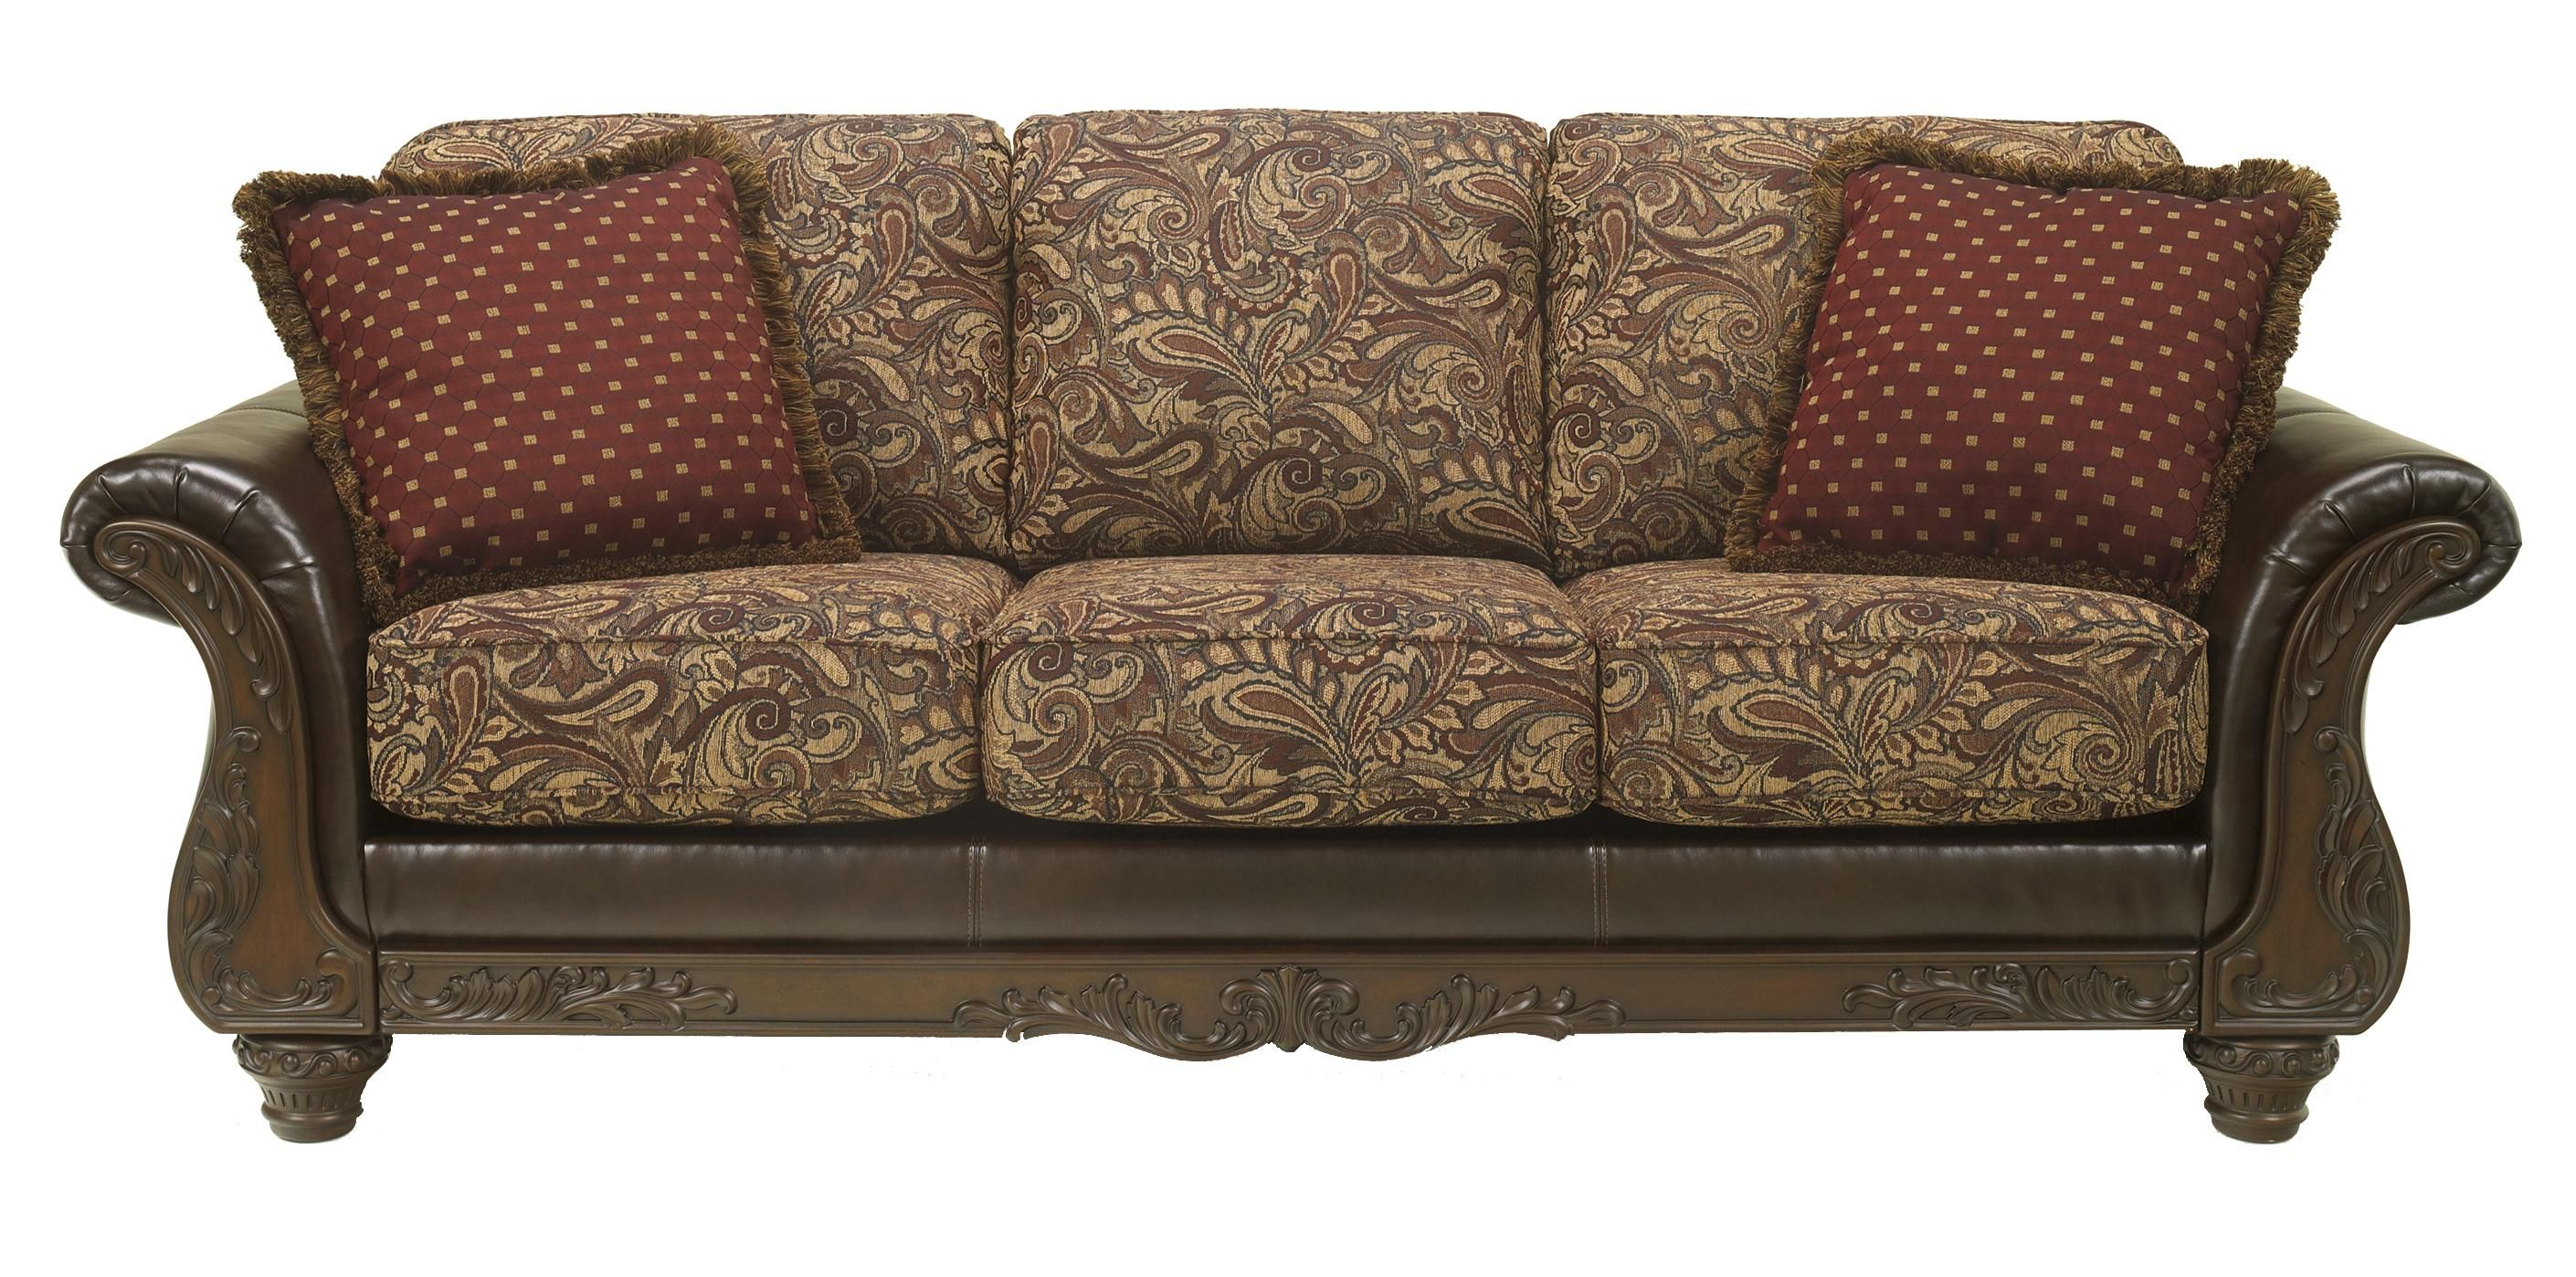 Shop For 1850 , Multiply Sofa, And Other Living Room Sofas At Colfax  Furniture And Mattress In Greensboro, Winston Salem And Kernersville, NC.